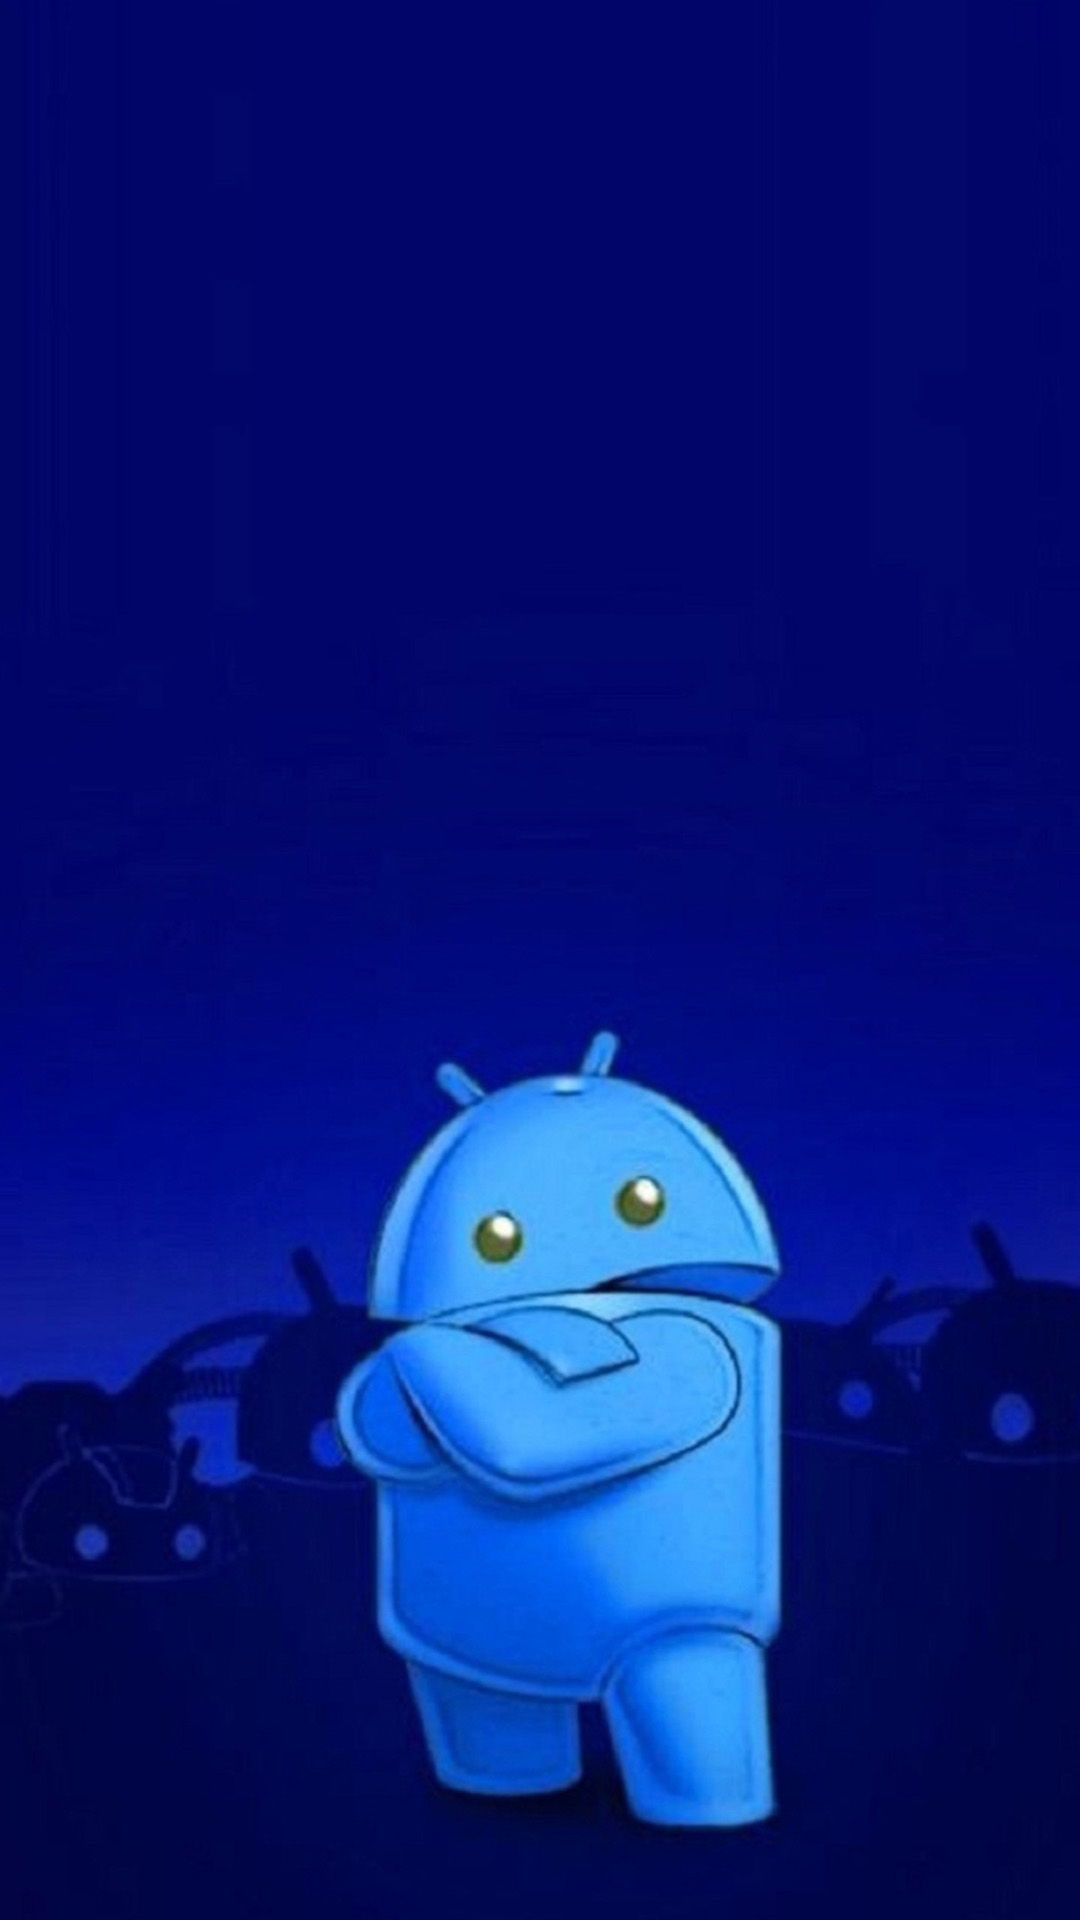 Blue Android LOGO 02 Galaxy S5 Wallpapers HD 1080x1920